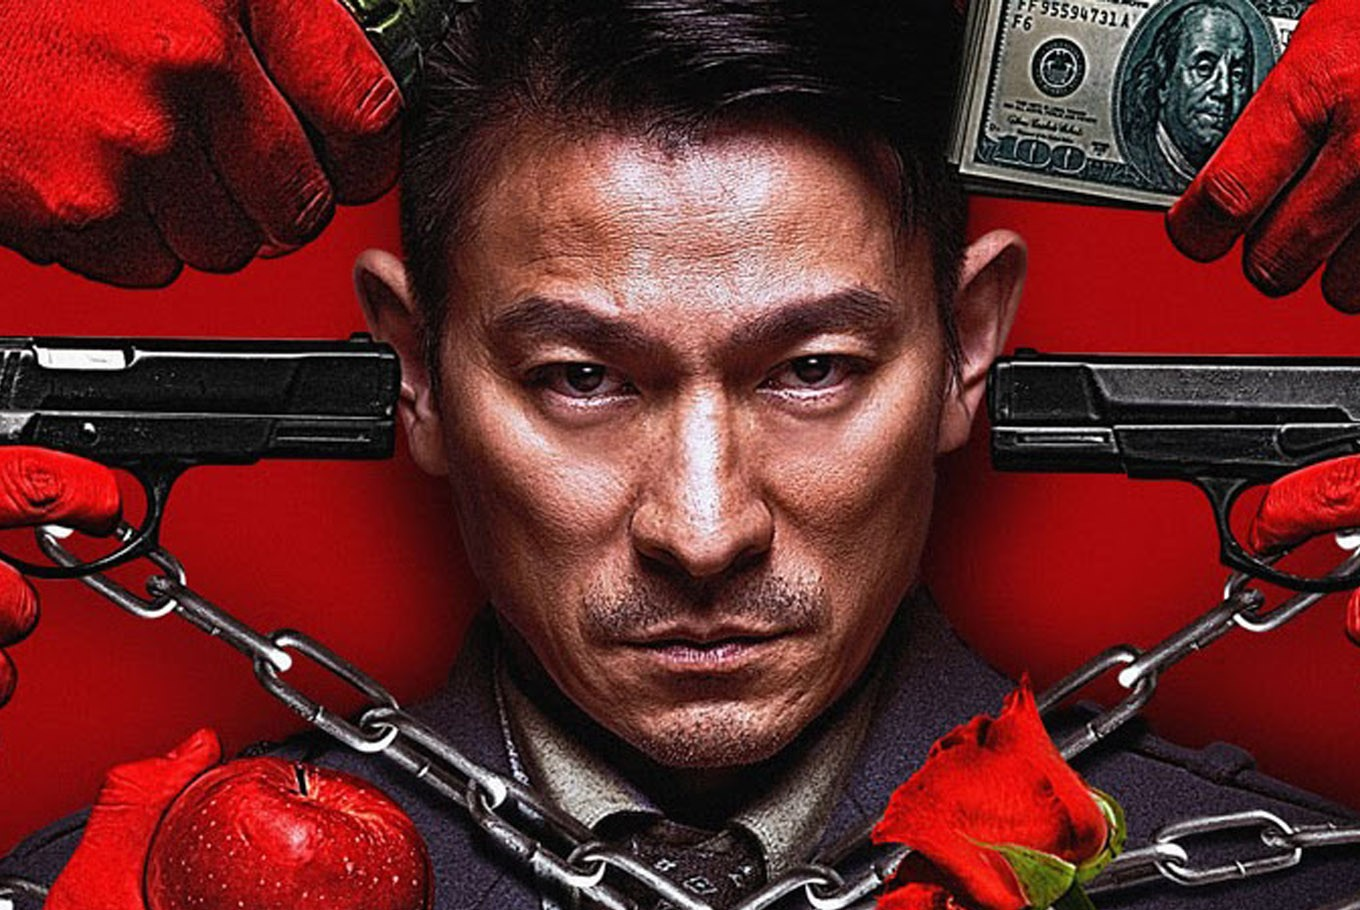 Andy Lau is not too interested in Hollywood